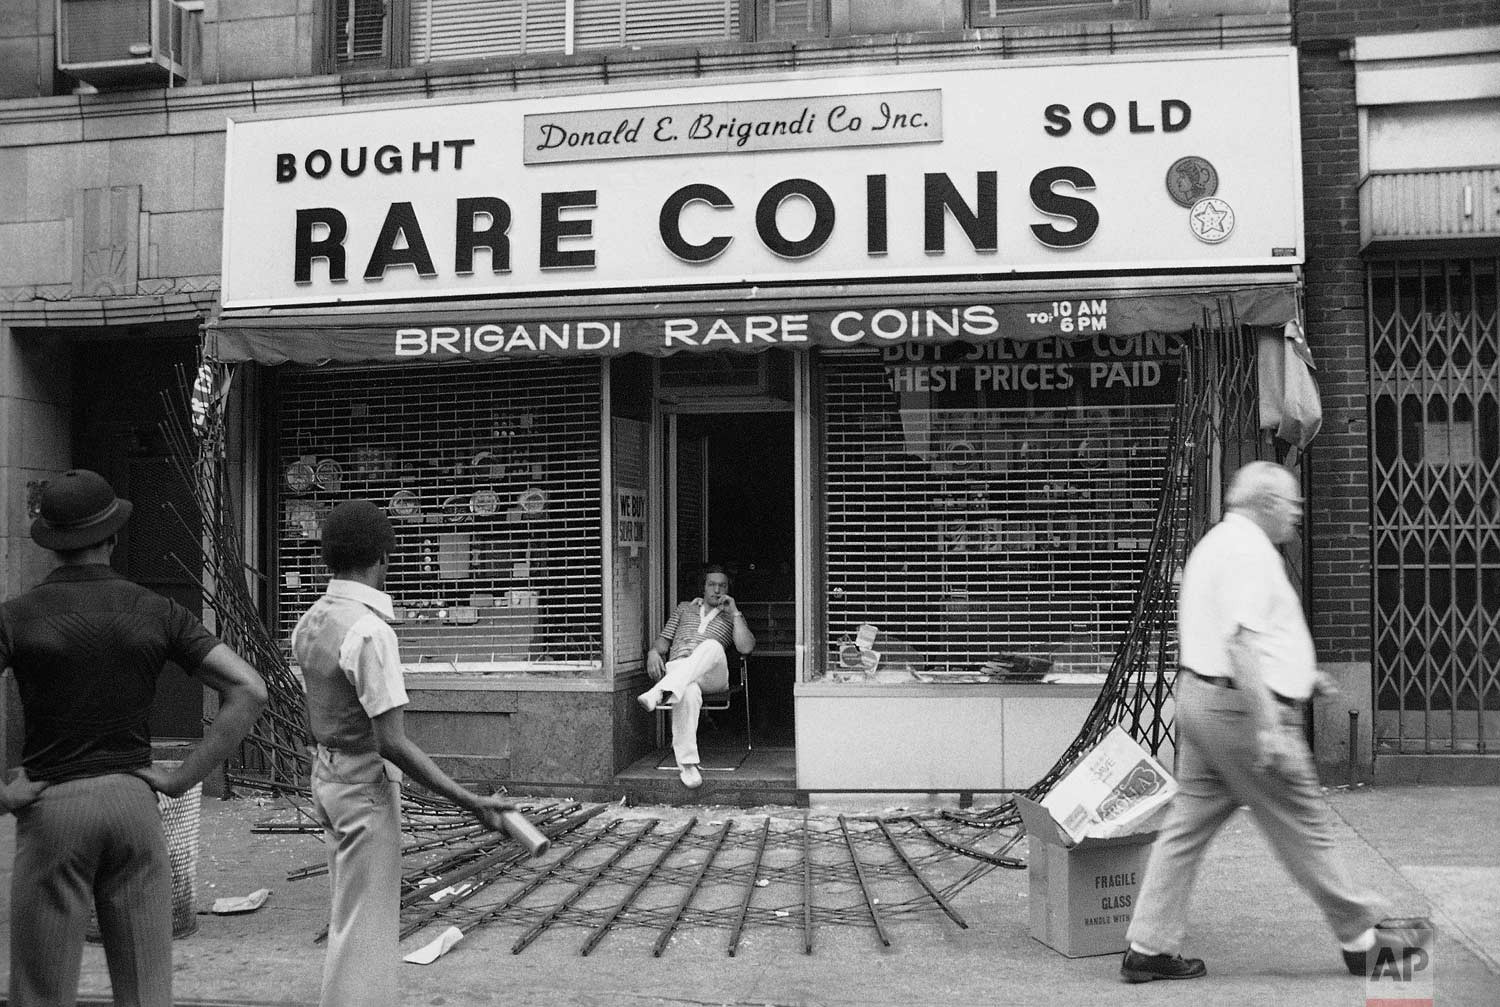 """The owner of midtown Manhattan coin shop sits disconsolately in his doorway in New York on Thursday, July 14, 1977. The steel gates protecting the shop were ripped down by looters. """"They sure cleaned me out,"""" he said. (AP Photo/Sandy Colton)"""